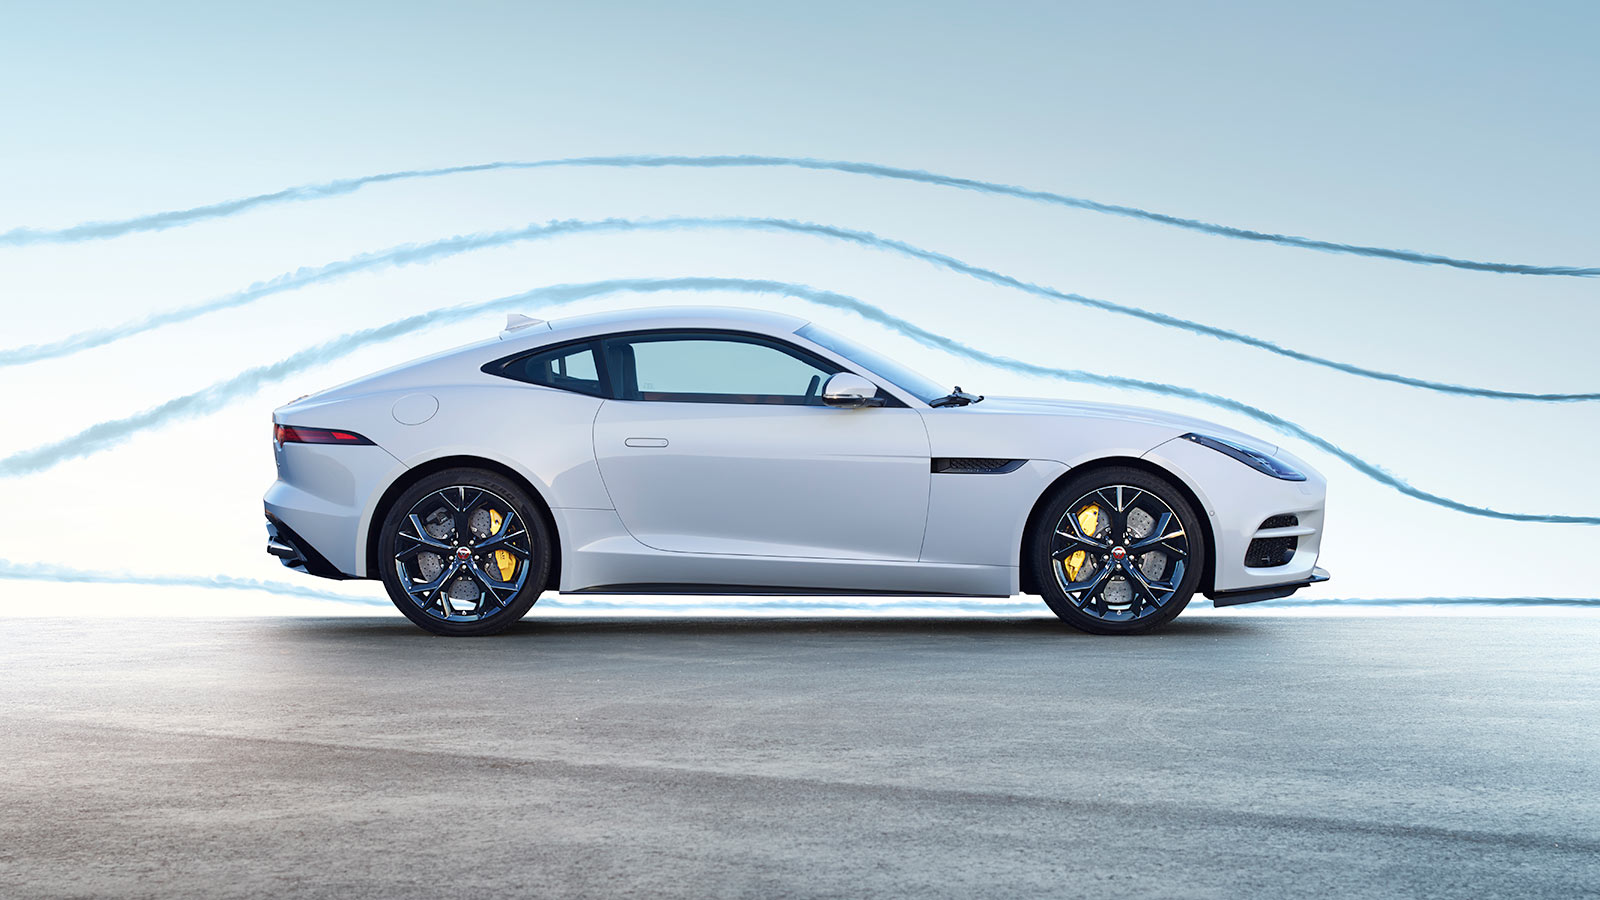 Jaguar F-TYPE 3.0 (380) S/C V6 Chequered Flag AWD SPECIAL EDITIONS image 5